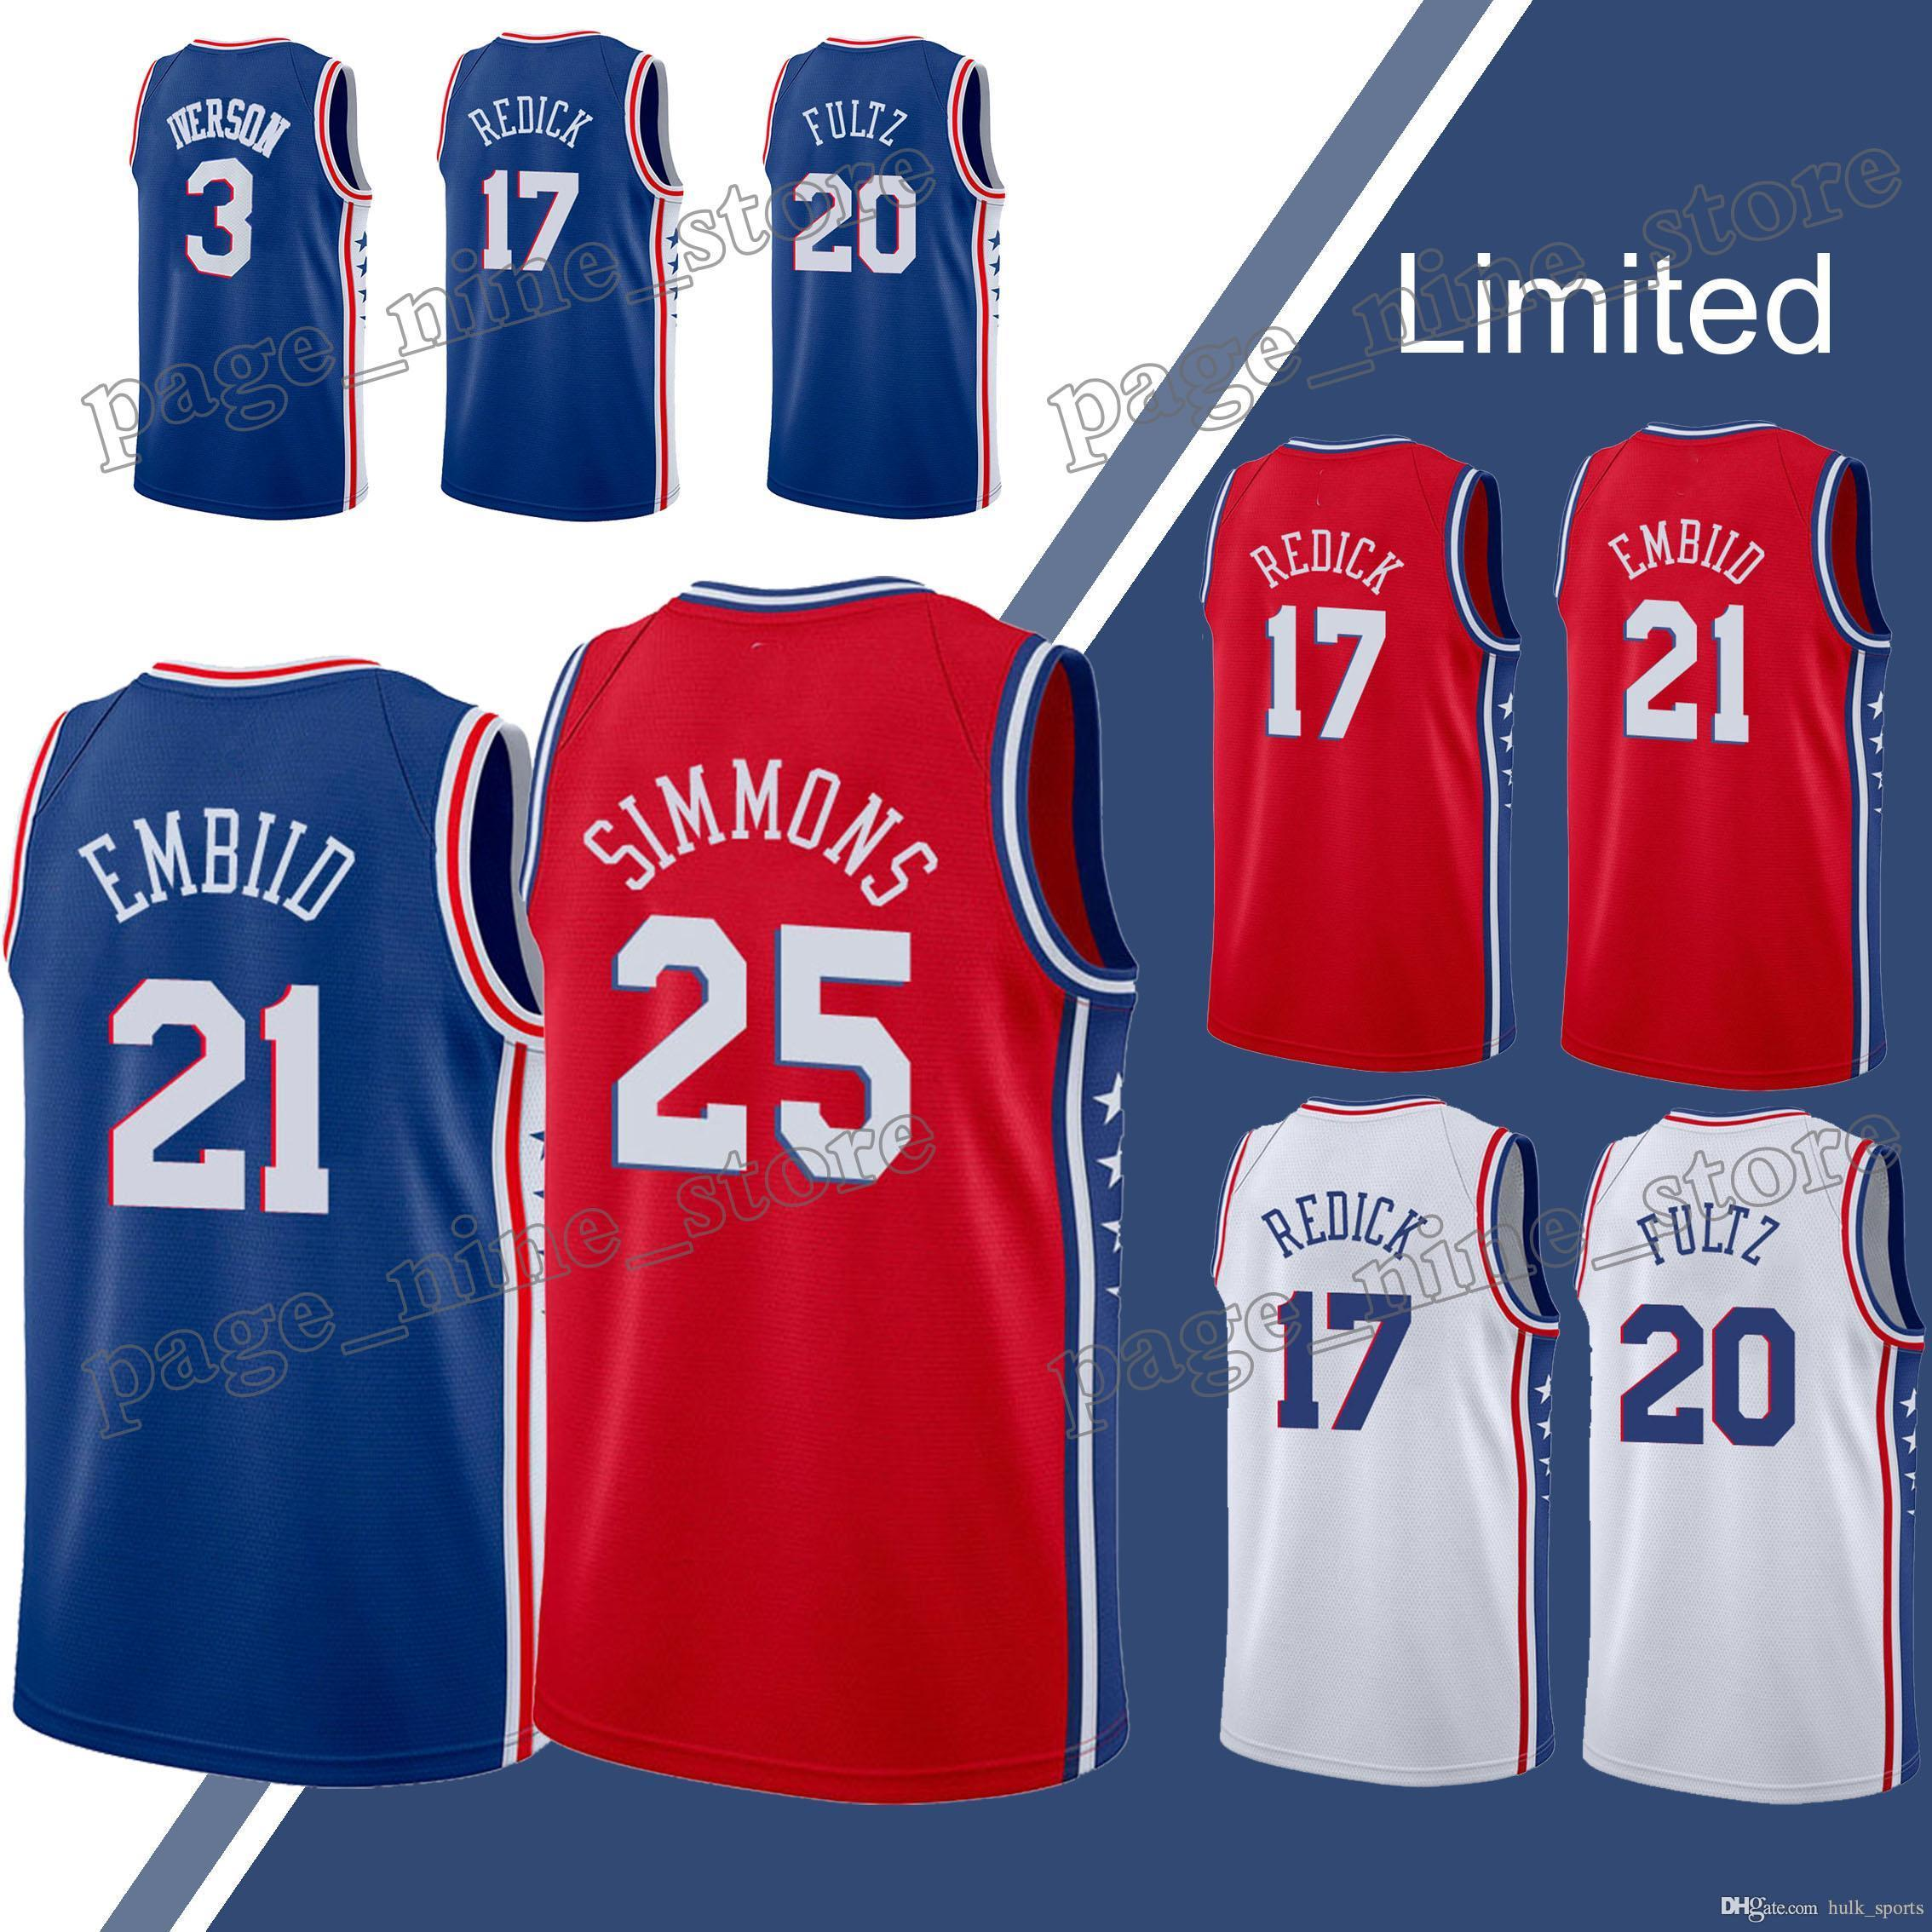 newest f3ae2 14fa9 21 Embiid jersey Philadelphia jerseys 76ers 25 Simmons jersey 17 Redick 3  Iverson 20 Fultz hot sale